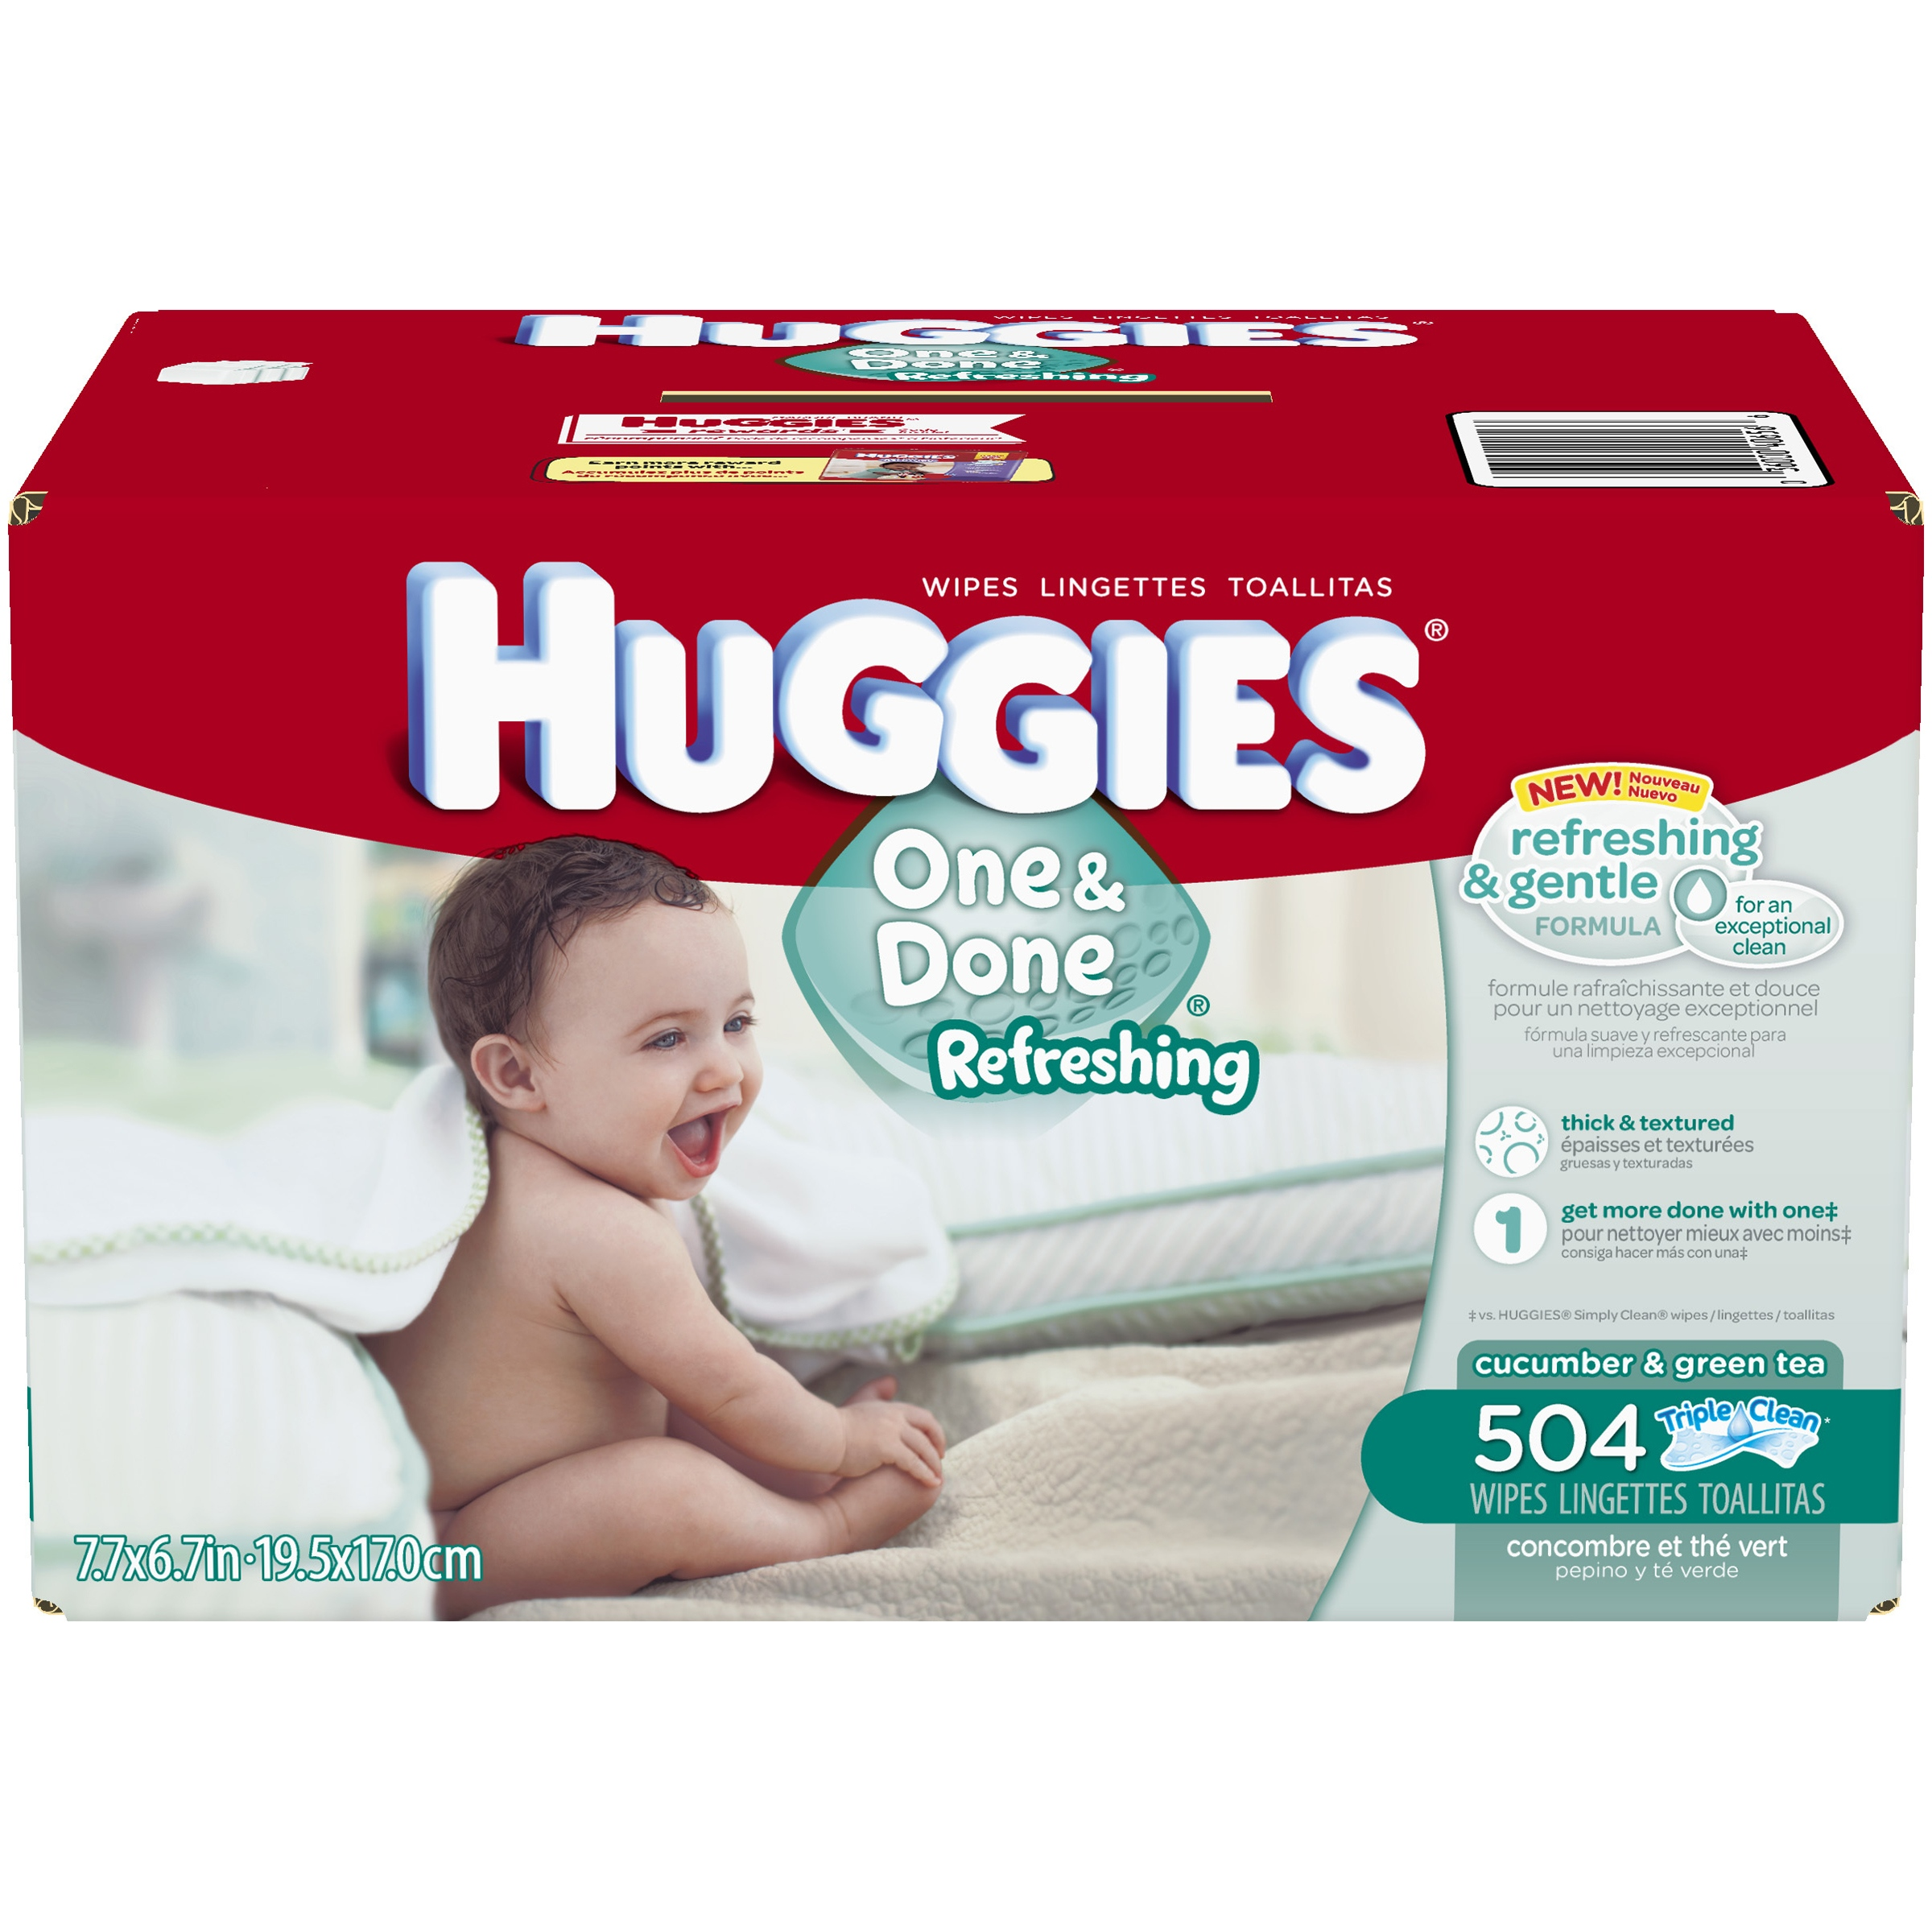 HUGGIES One & Done Refreshing Baby Wipes Refill, 504 sheets